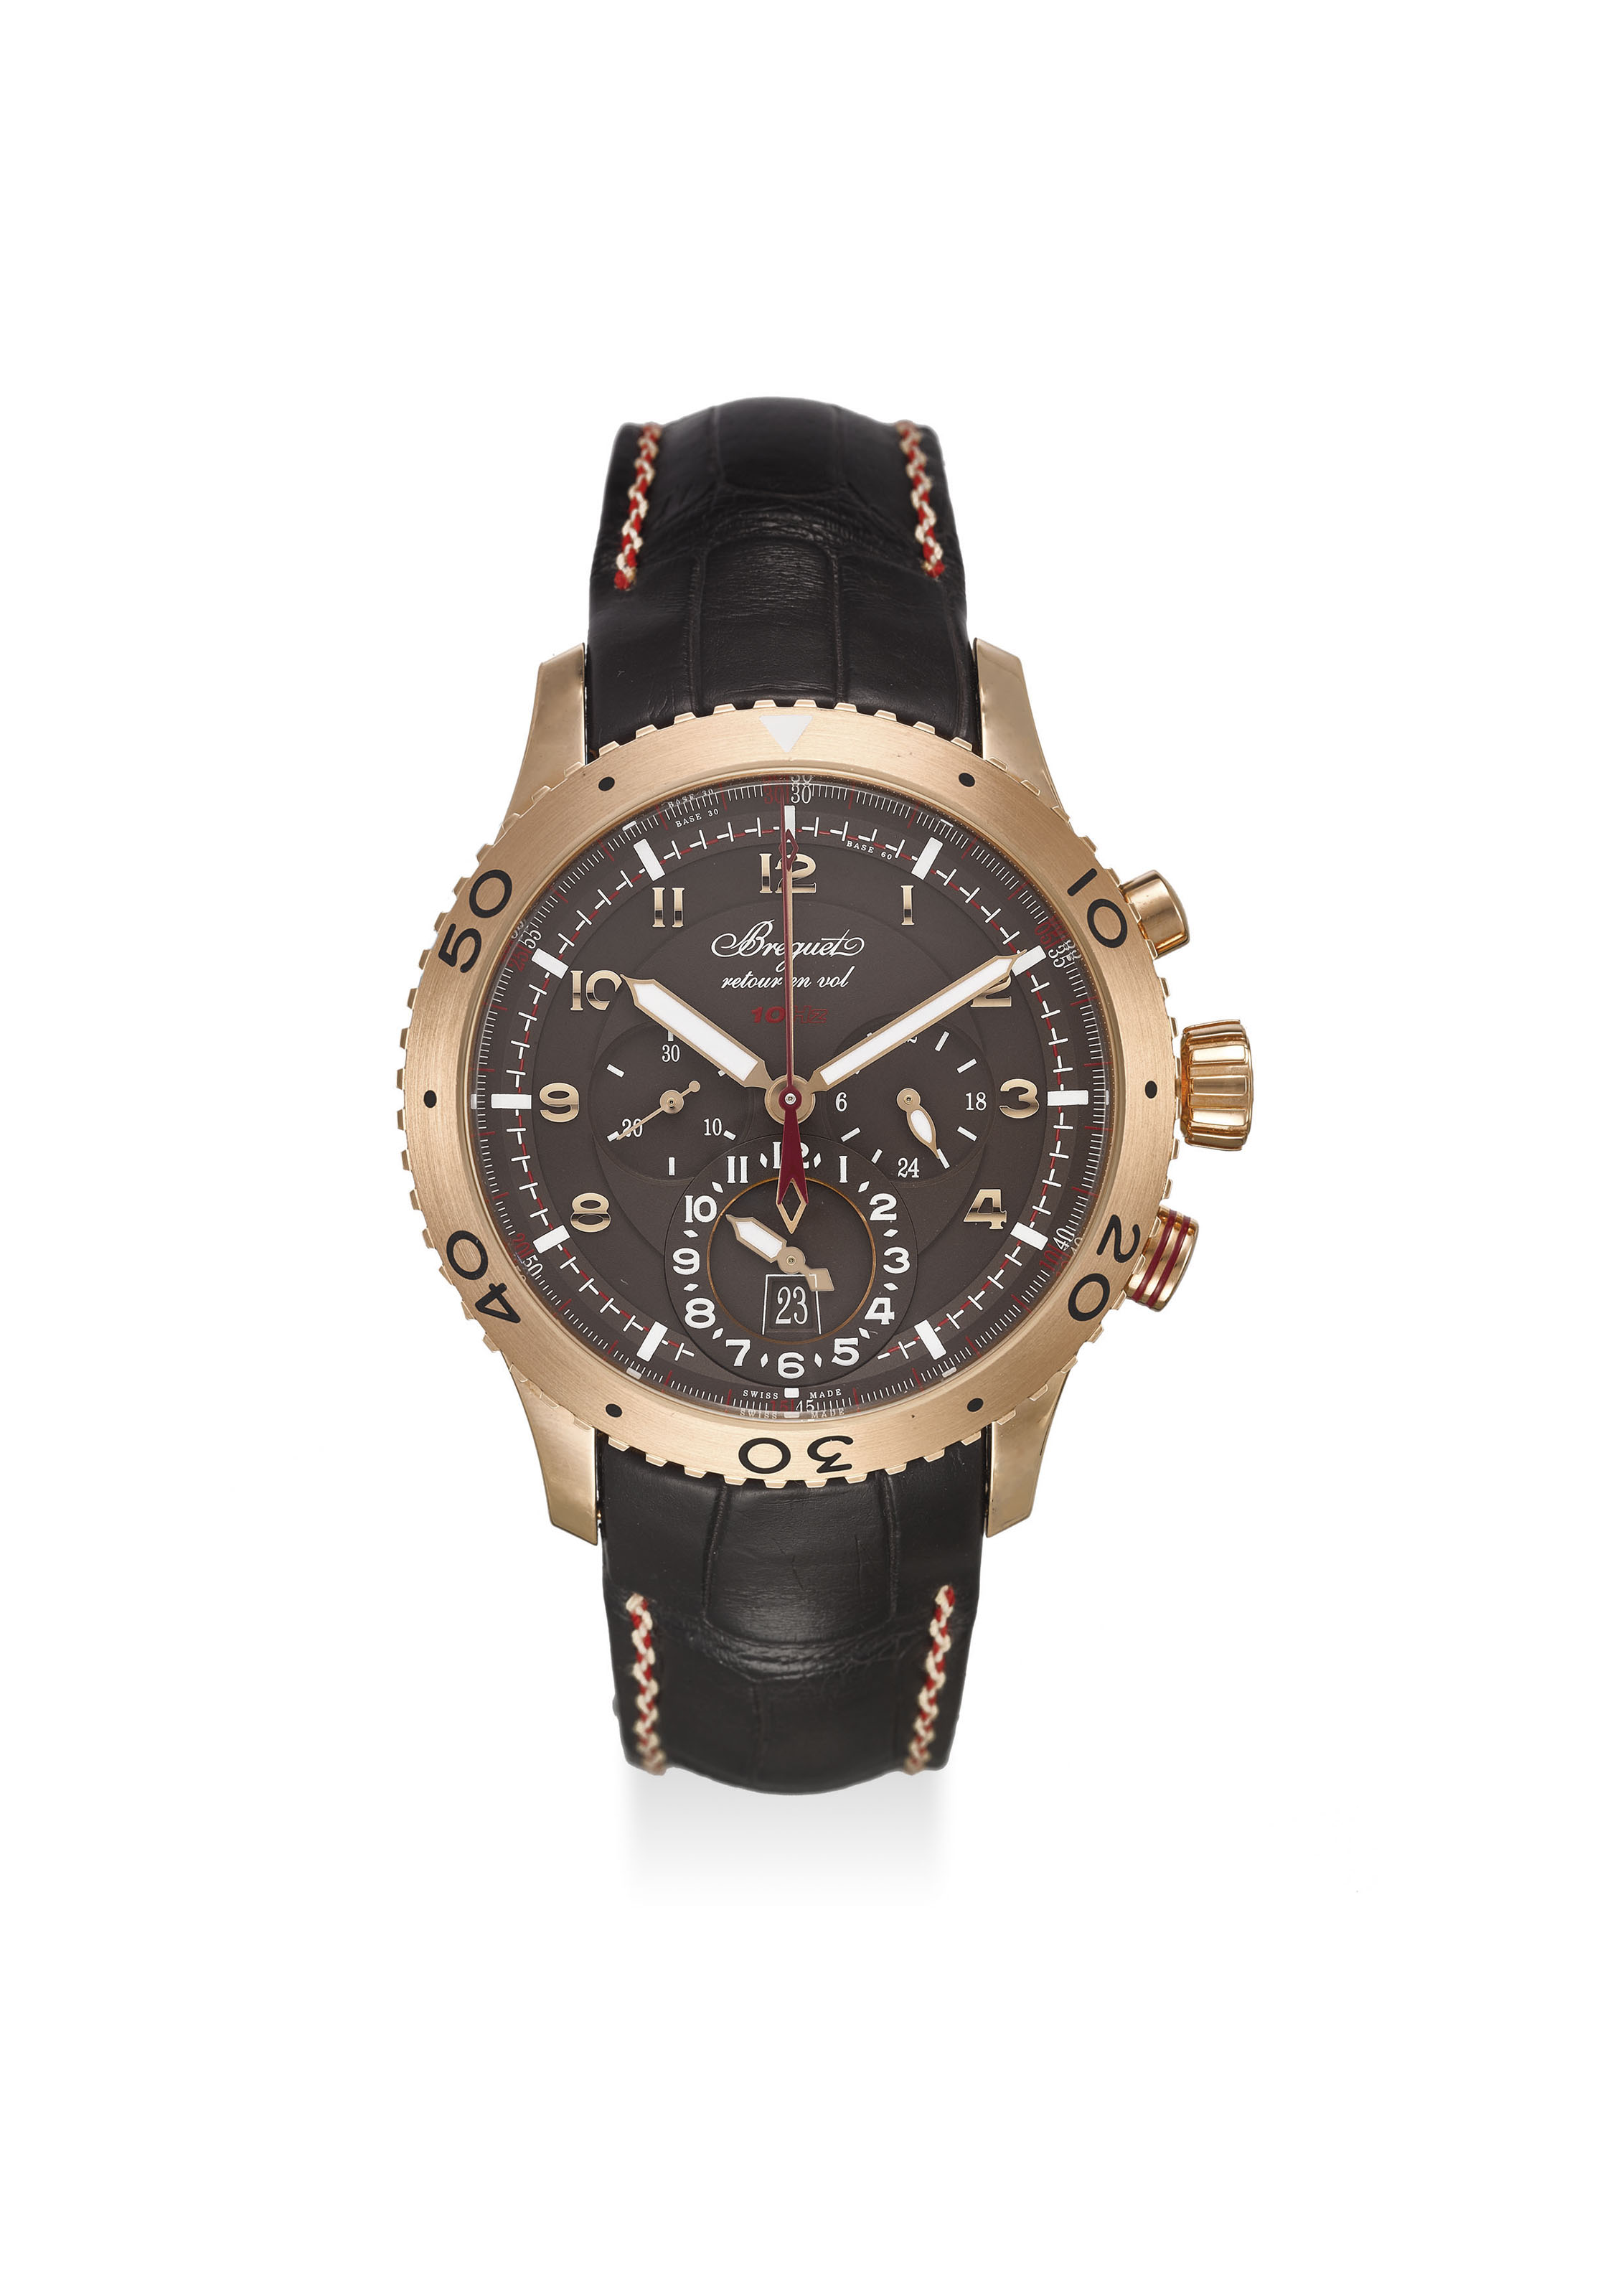 BREGUET AN EXTREMELY FINE 18K ROSE GOLD CHRONOGRAPH DUAL TIM...